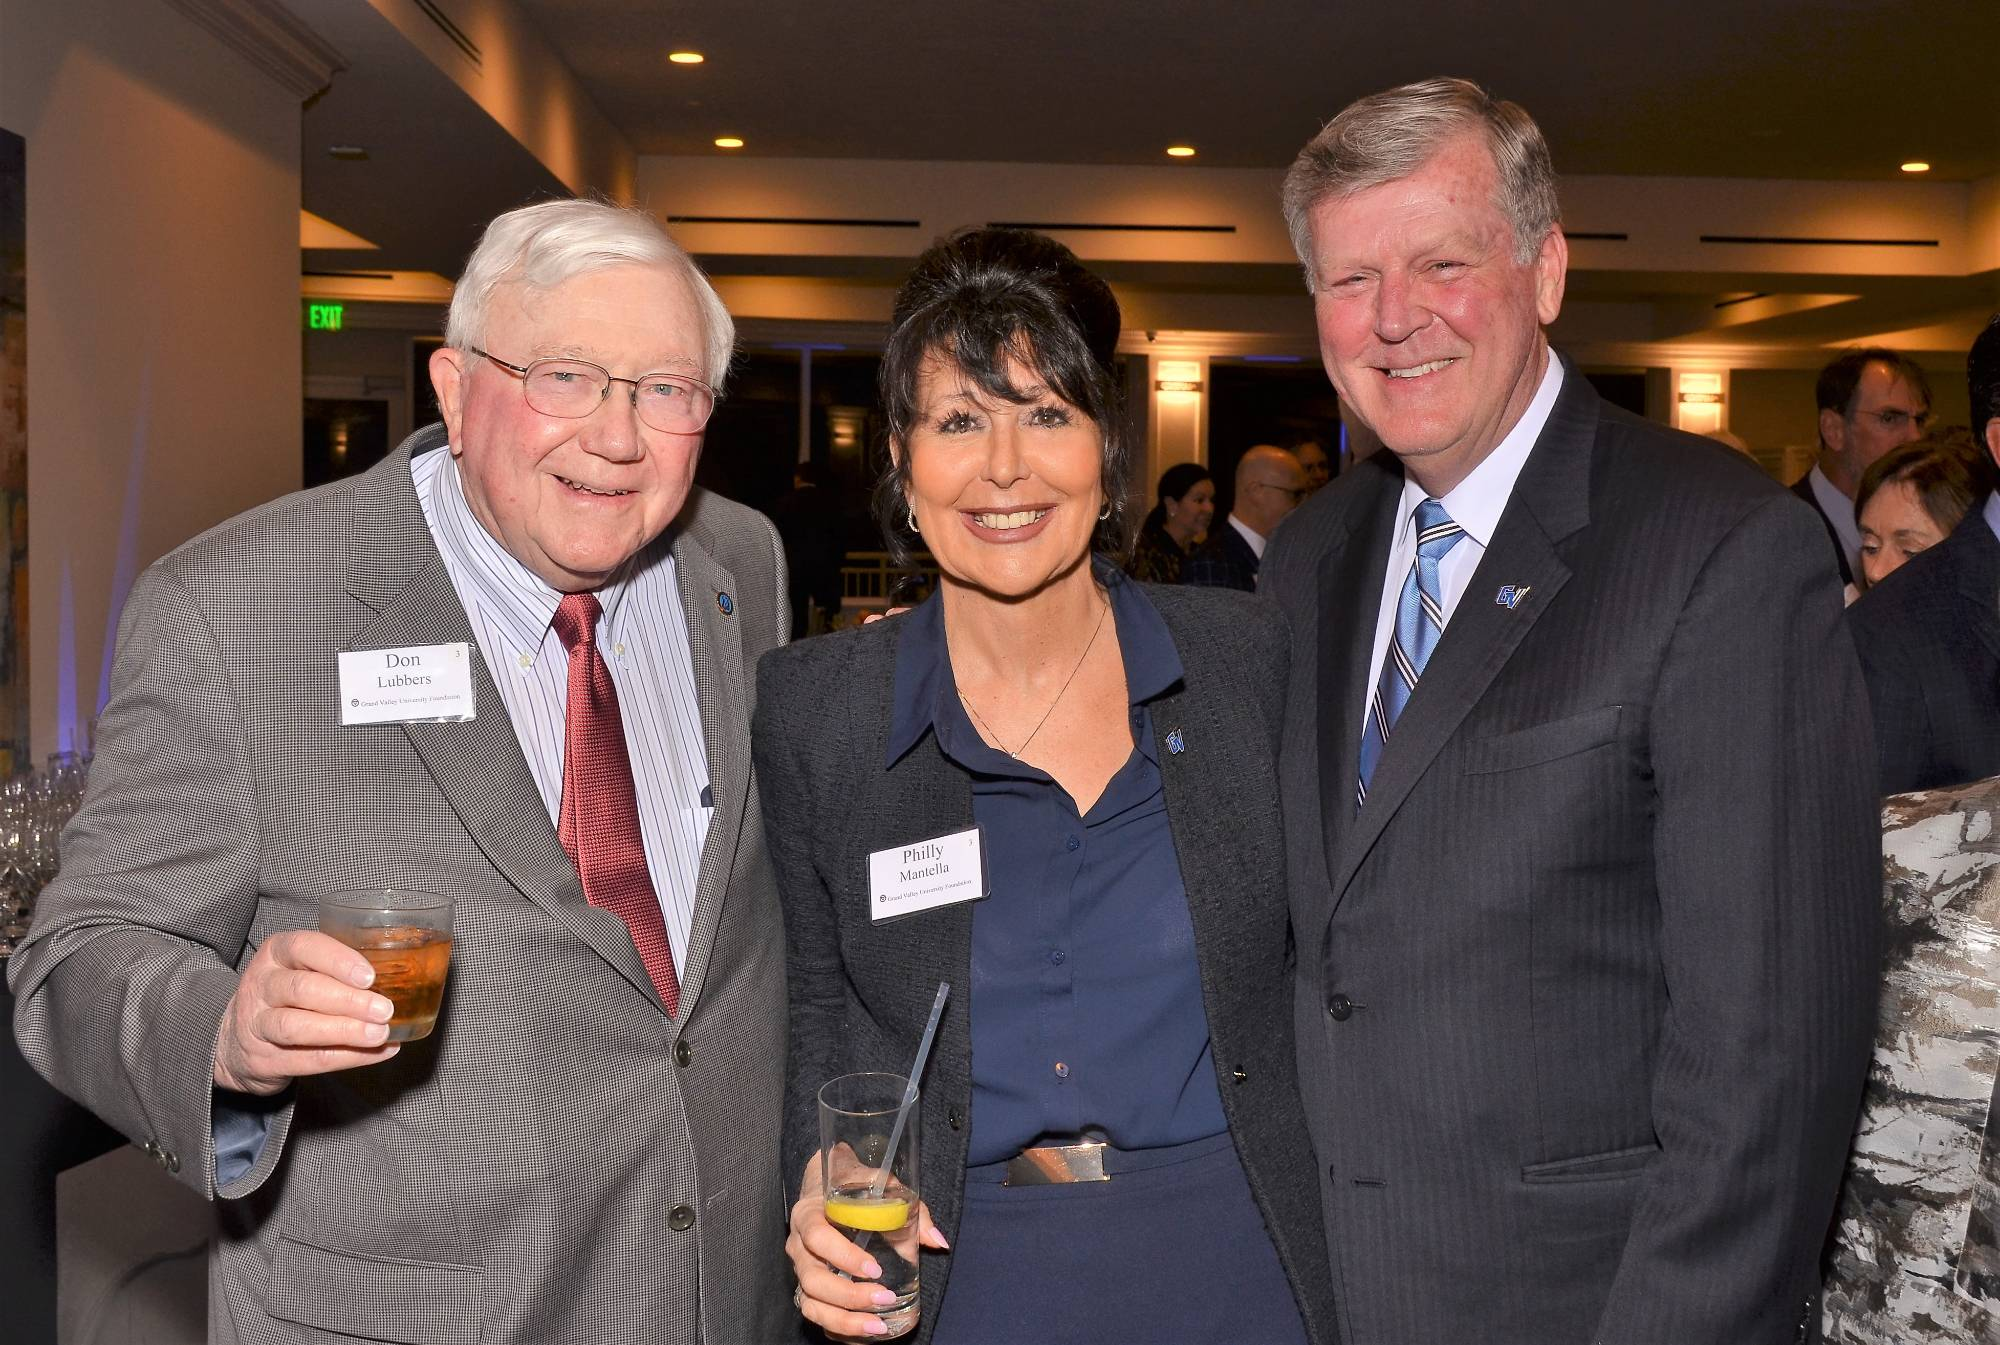 Don Lubbers, Philly Mantella, and President Haas.